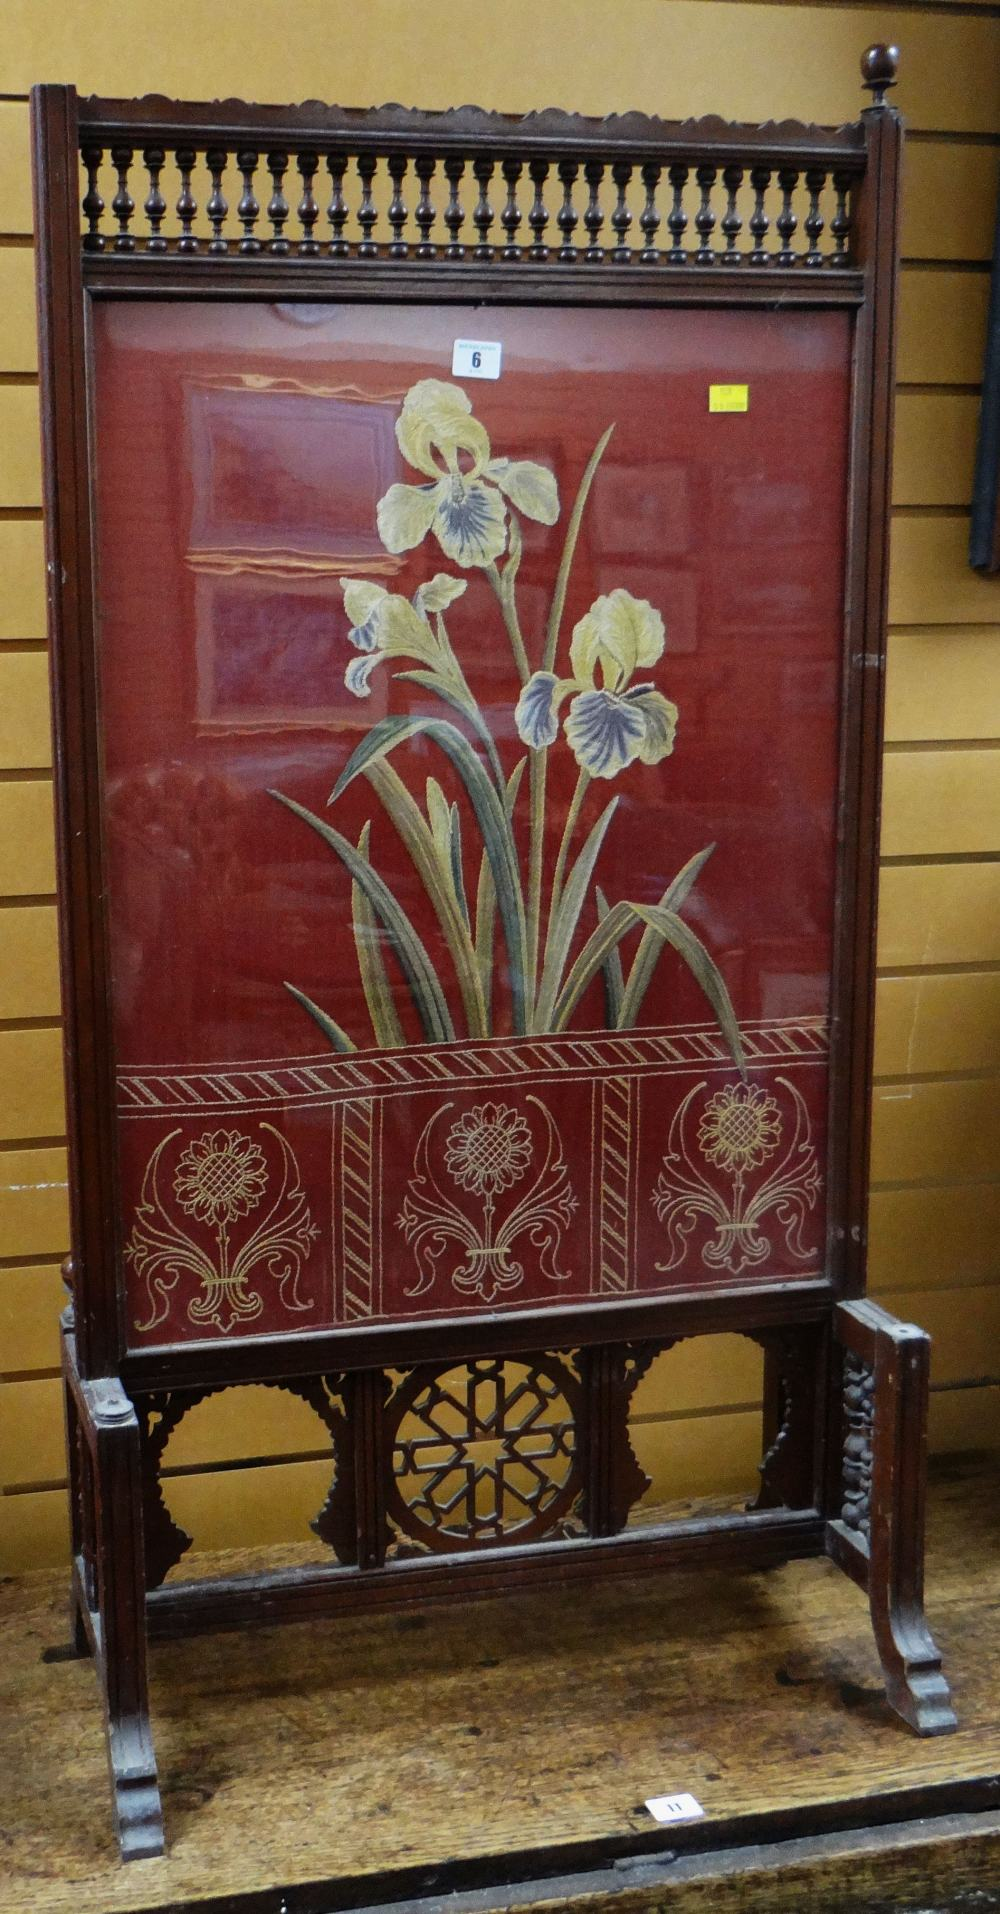 Lot 6 - AESTHETIC-MOVEMENT FIRE SCREEN with carved bobbins and open work, the panel with floral upholstery